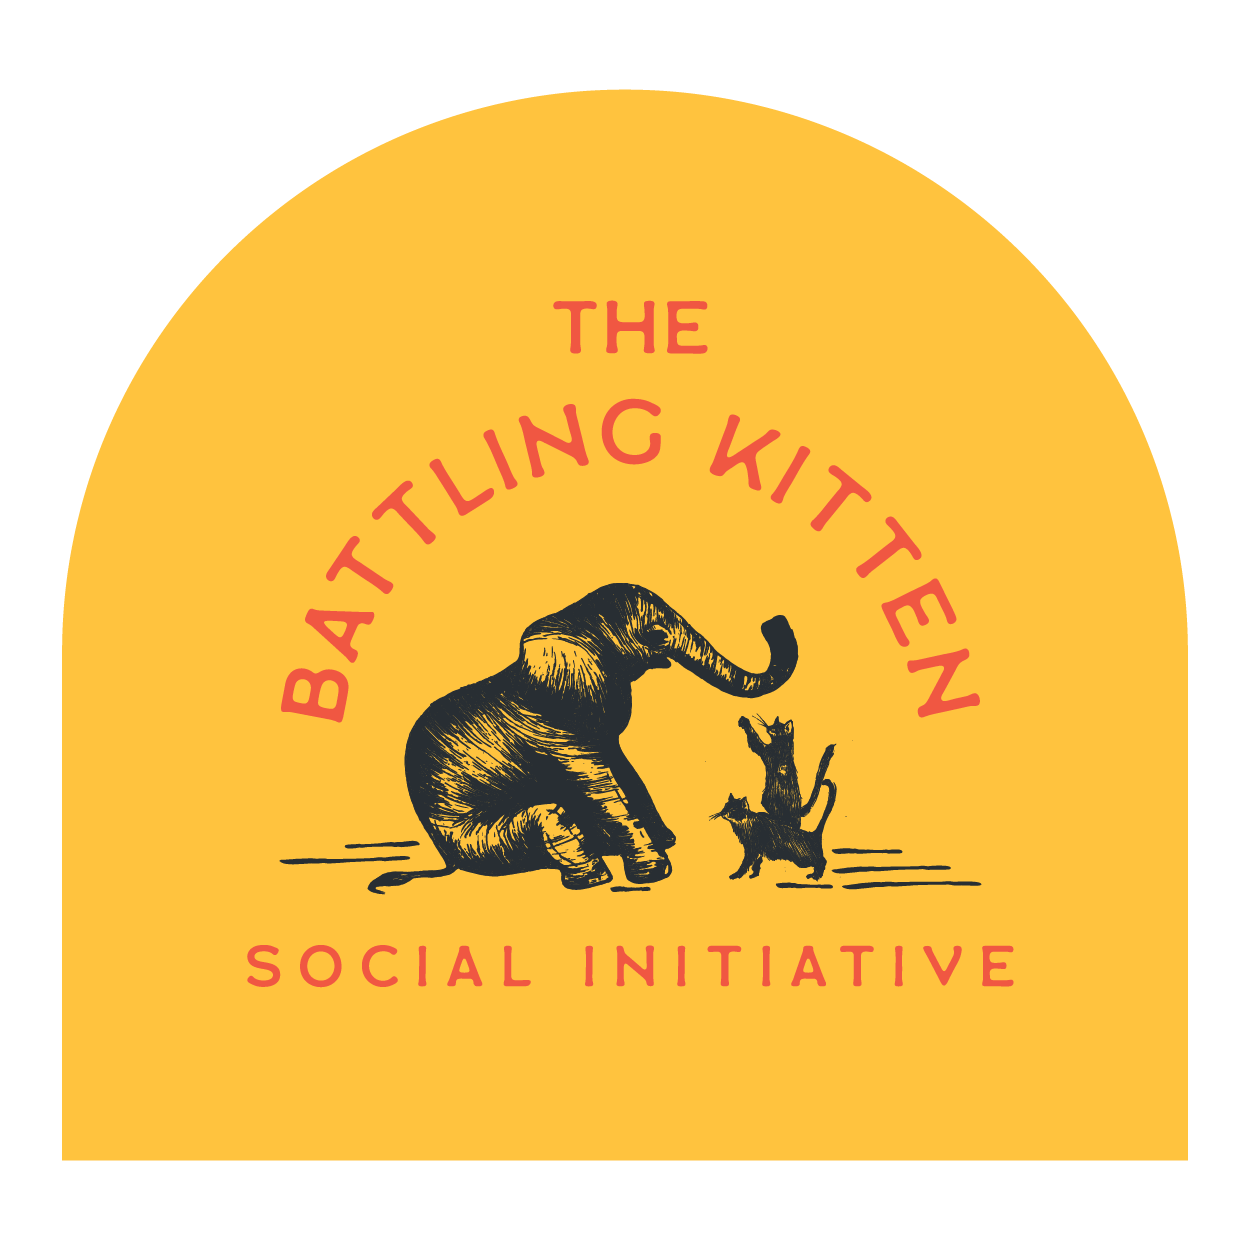 The Battling Kitten Foundation